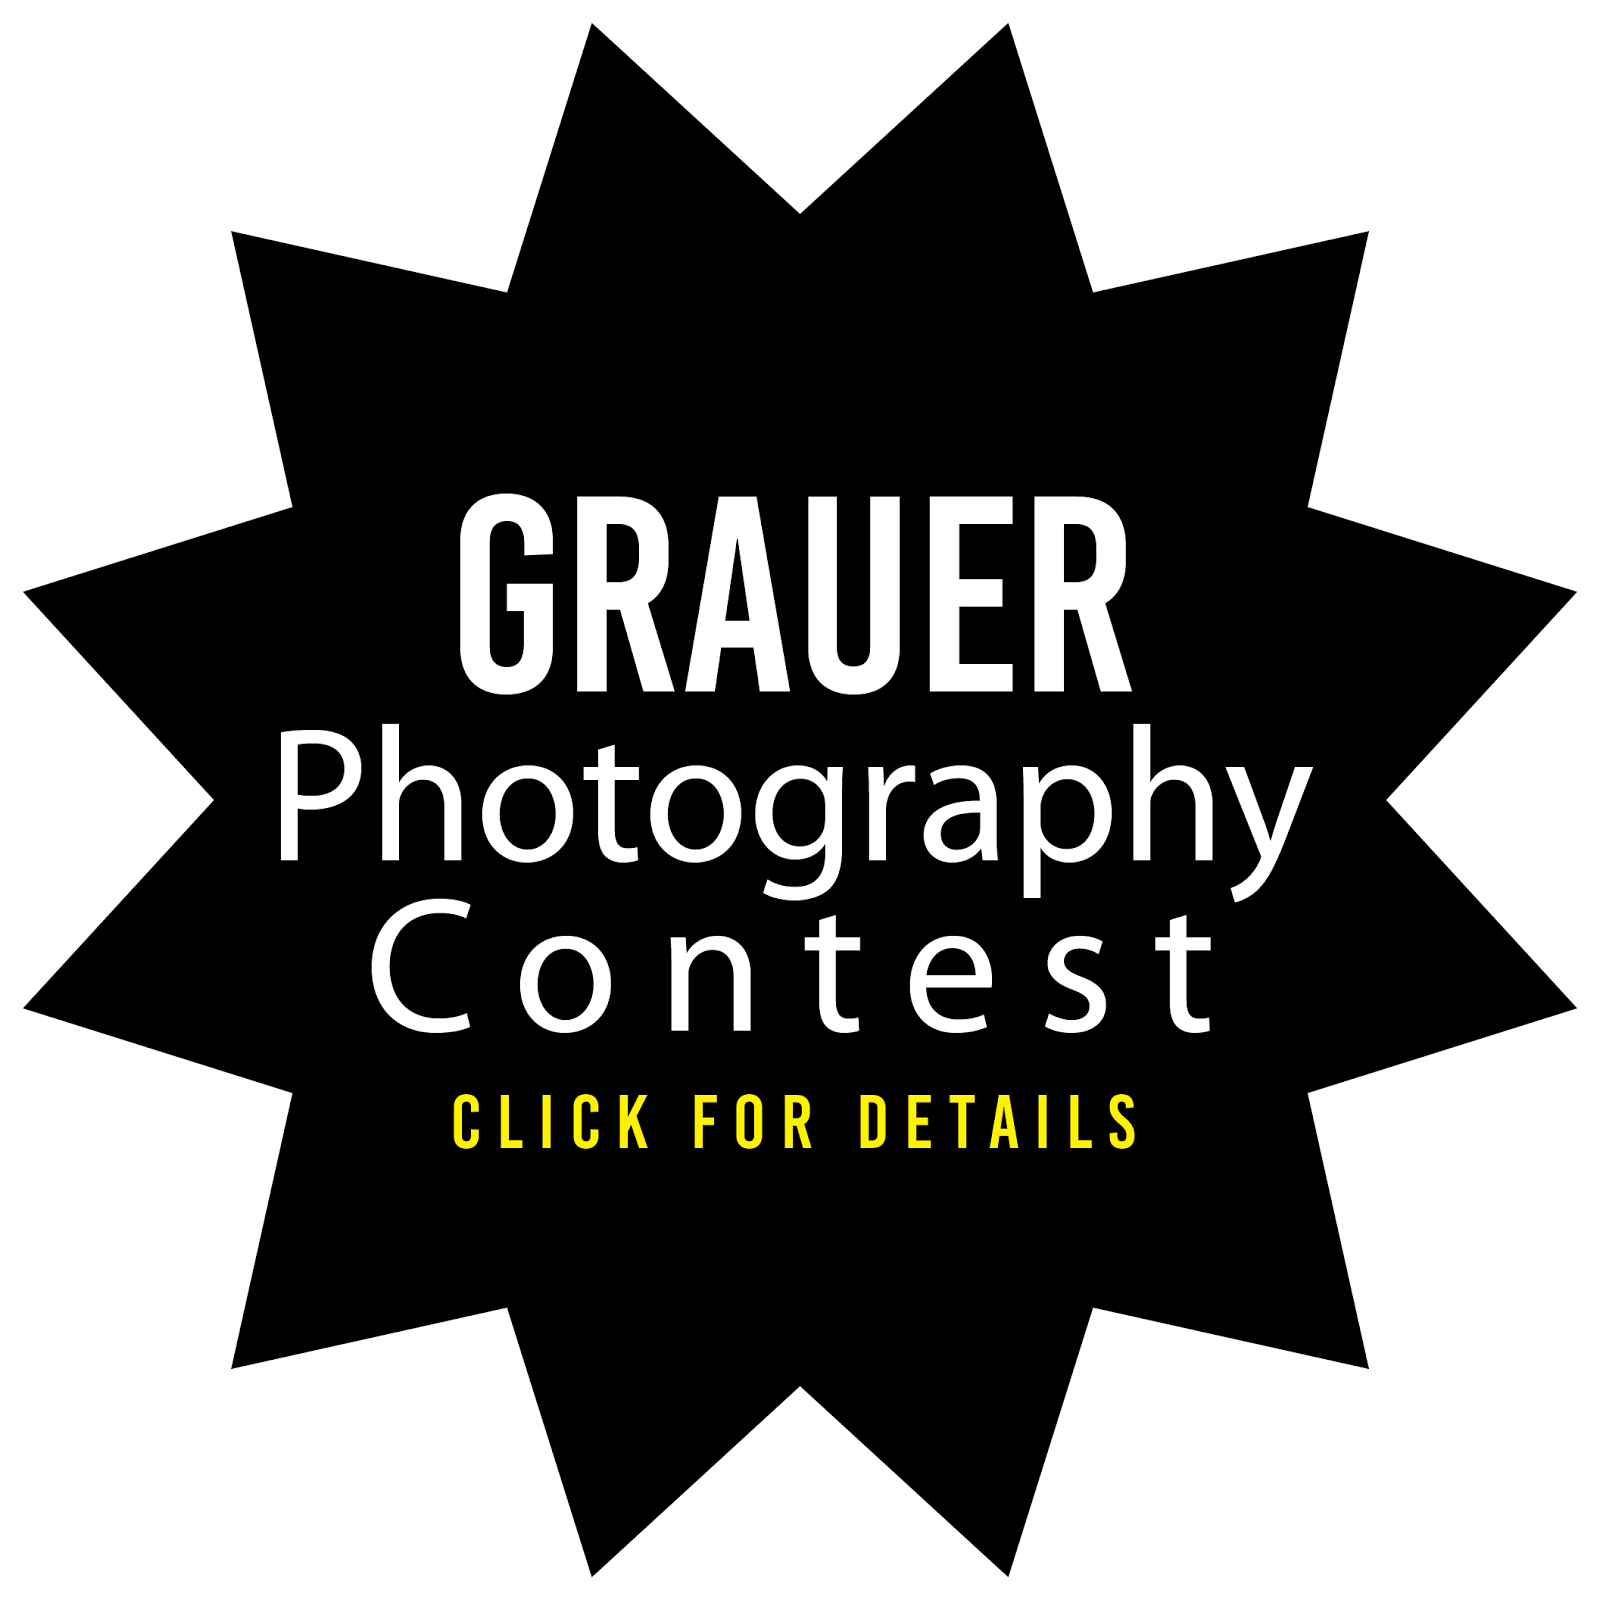 Grauer Photography Contest